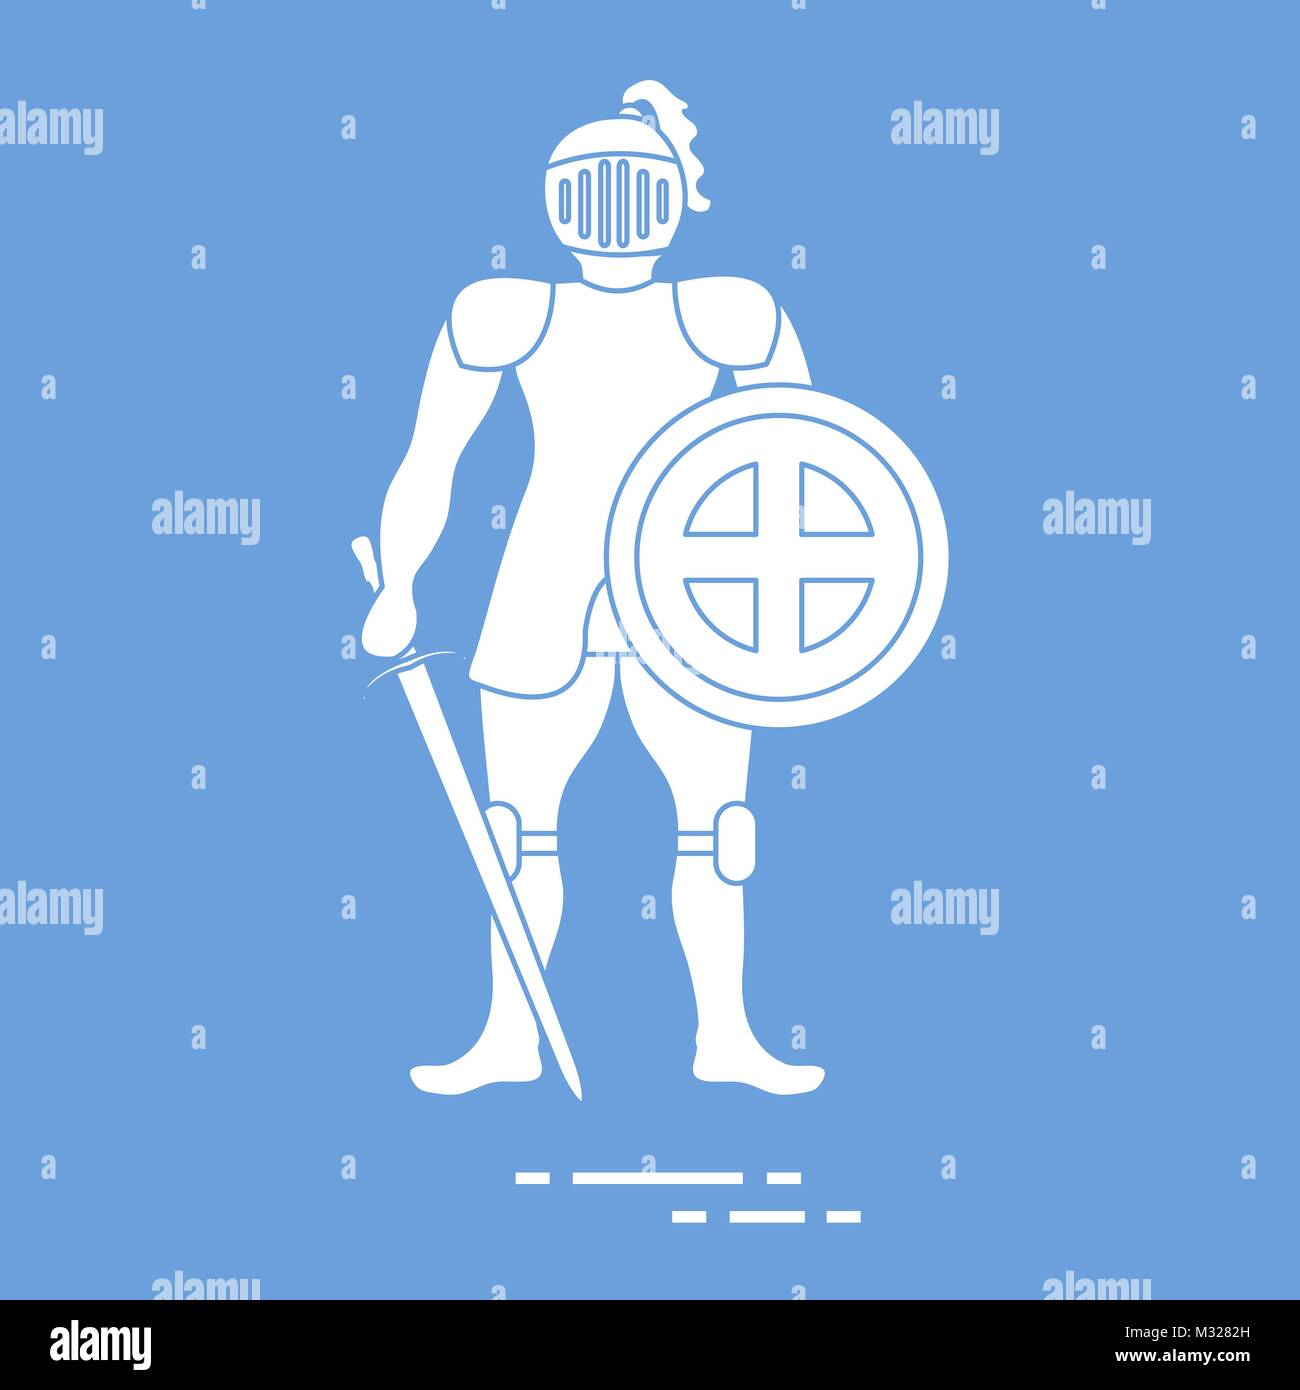 Knight In Armor Stock Vector Images - Alamy